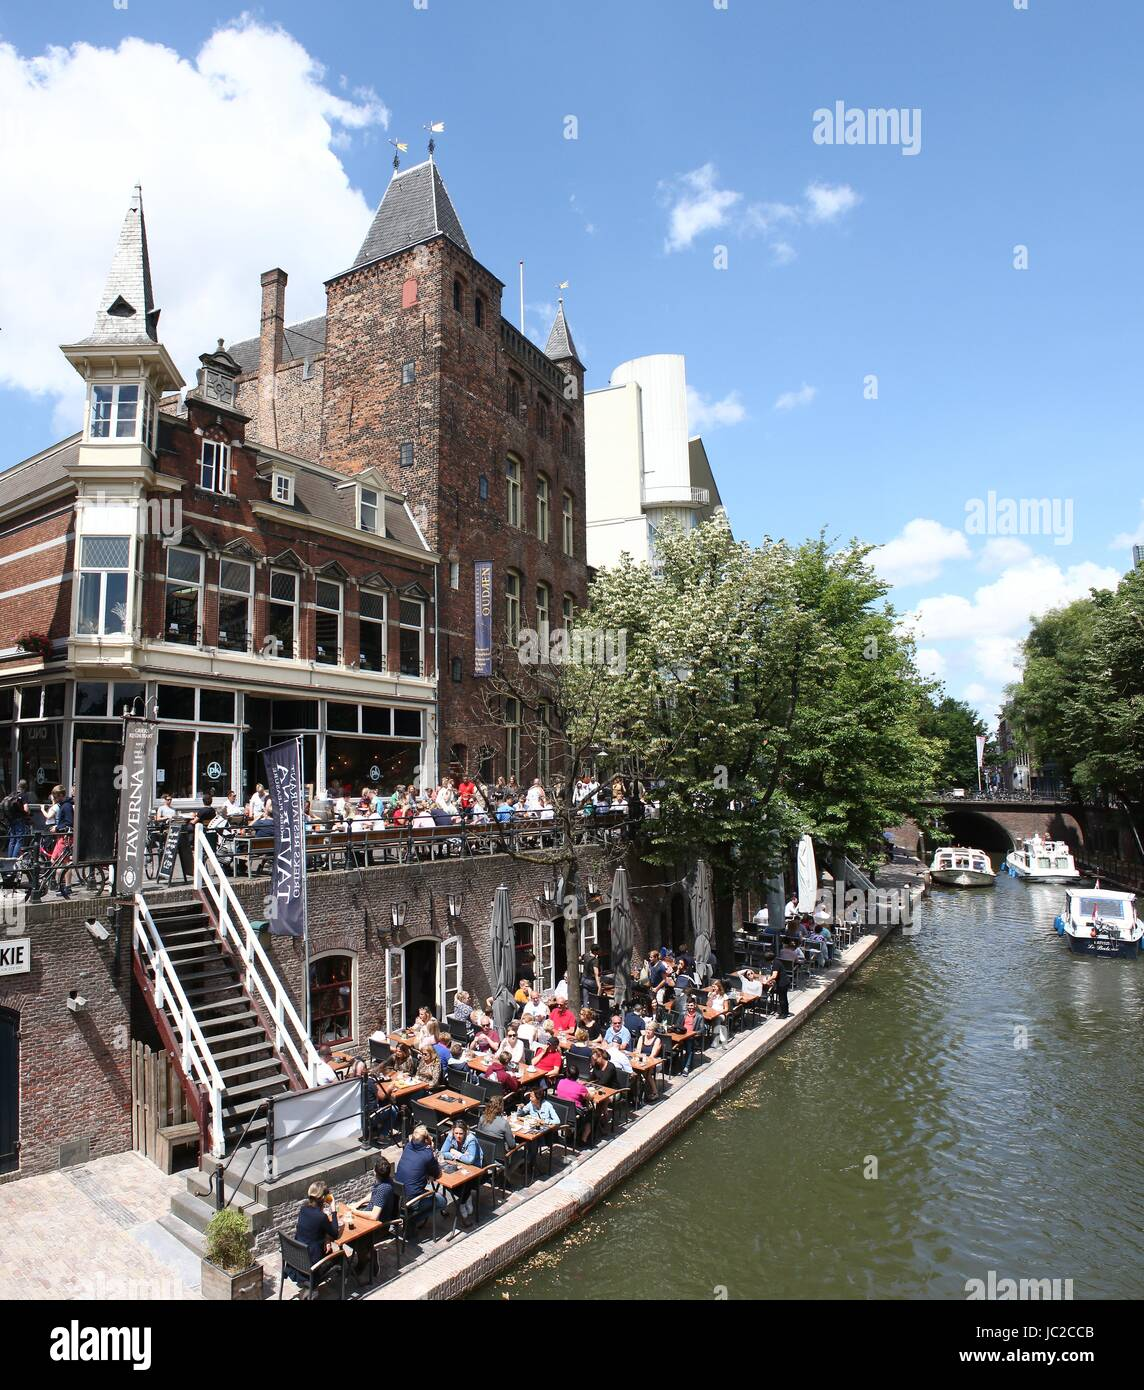 Tourists on a summer terrace along Oudegracht canal in inner city of Utrecht, Netherlands with Medieval 'Stadskasteel - Stock Image